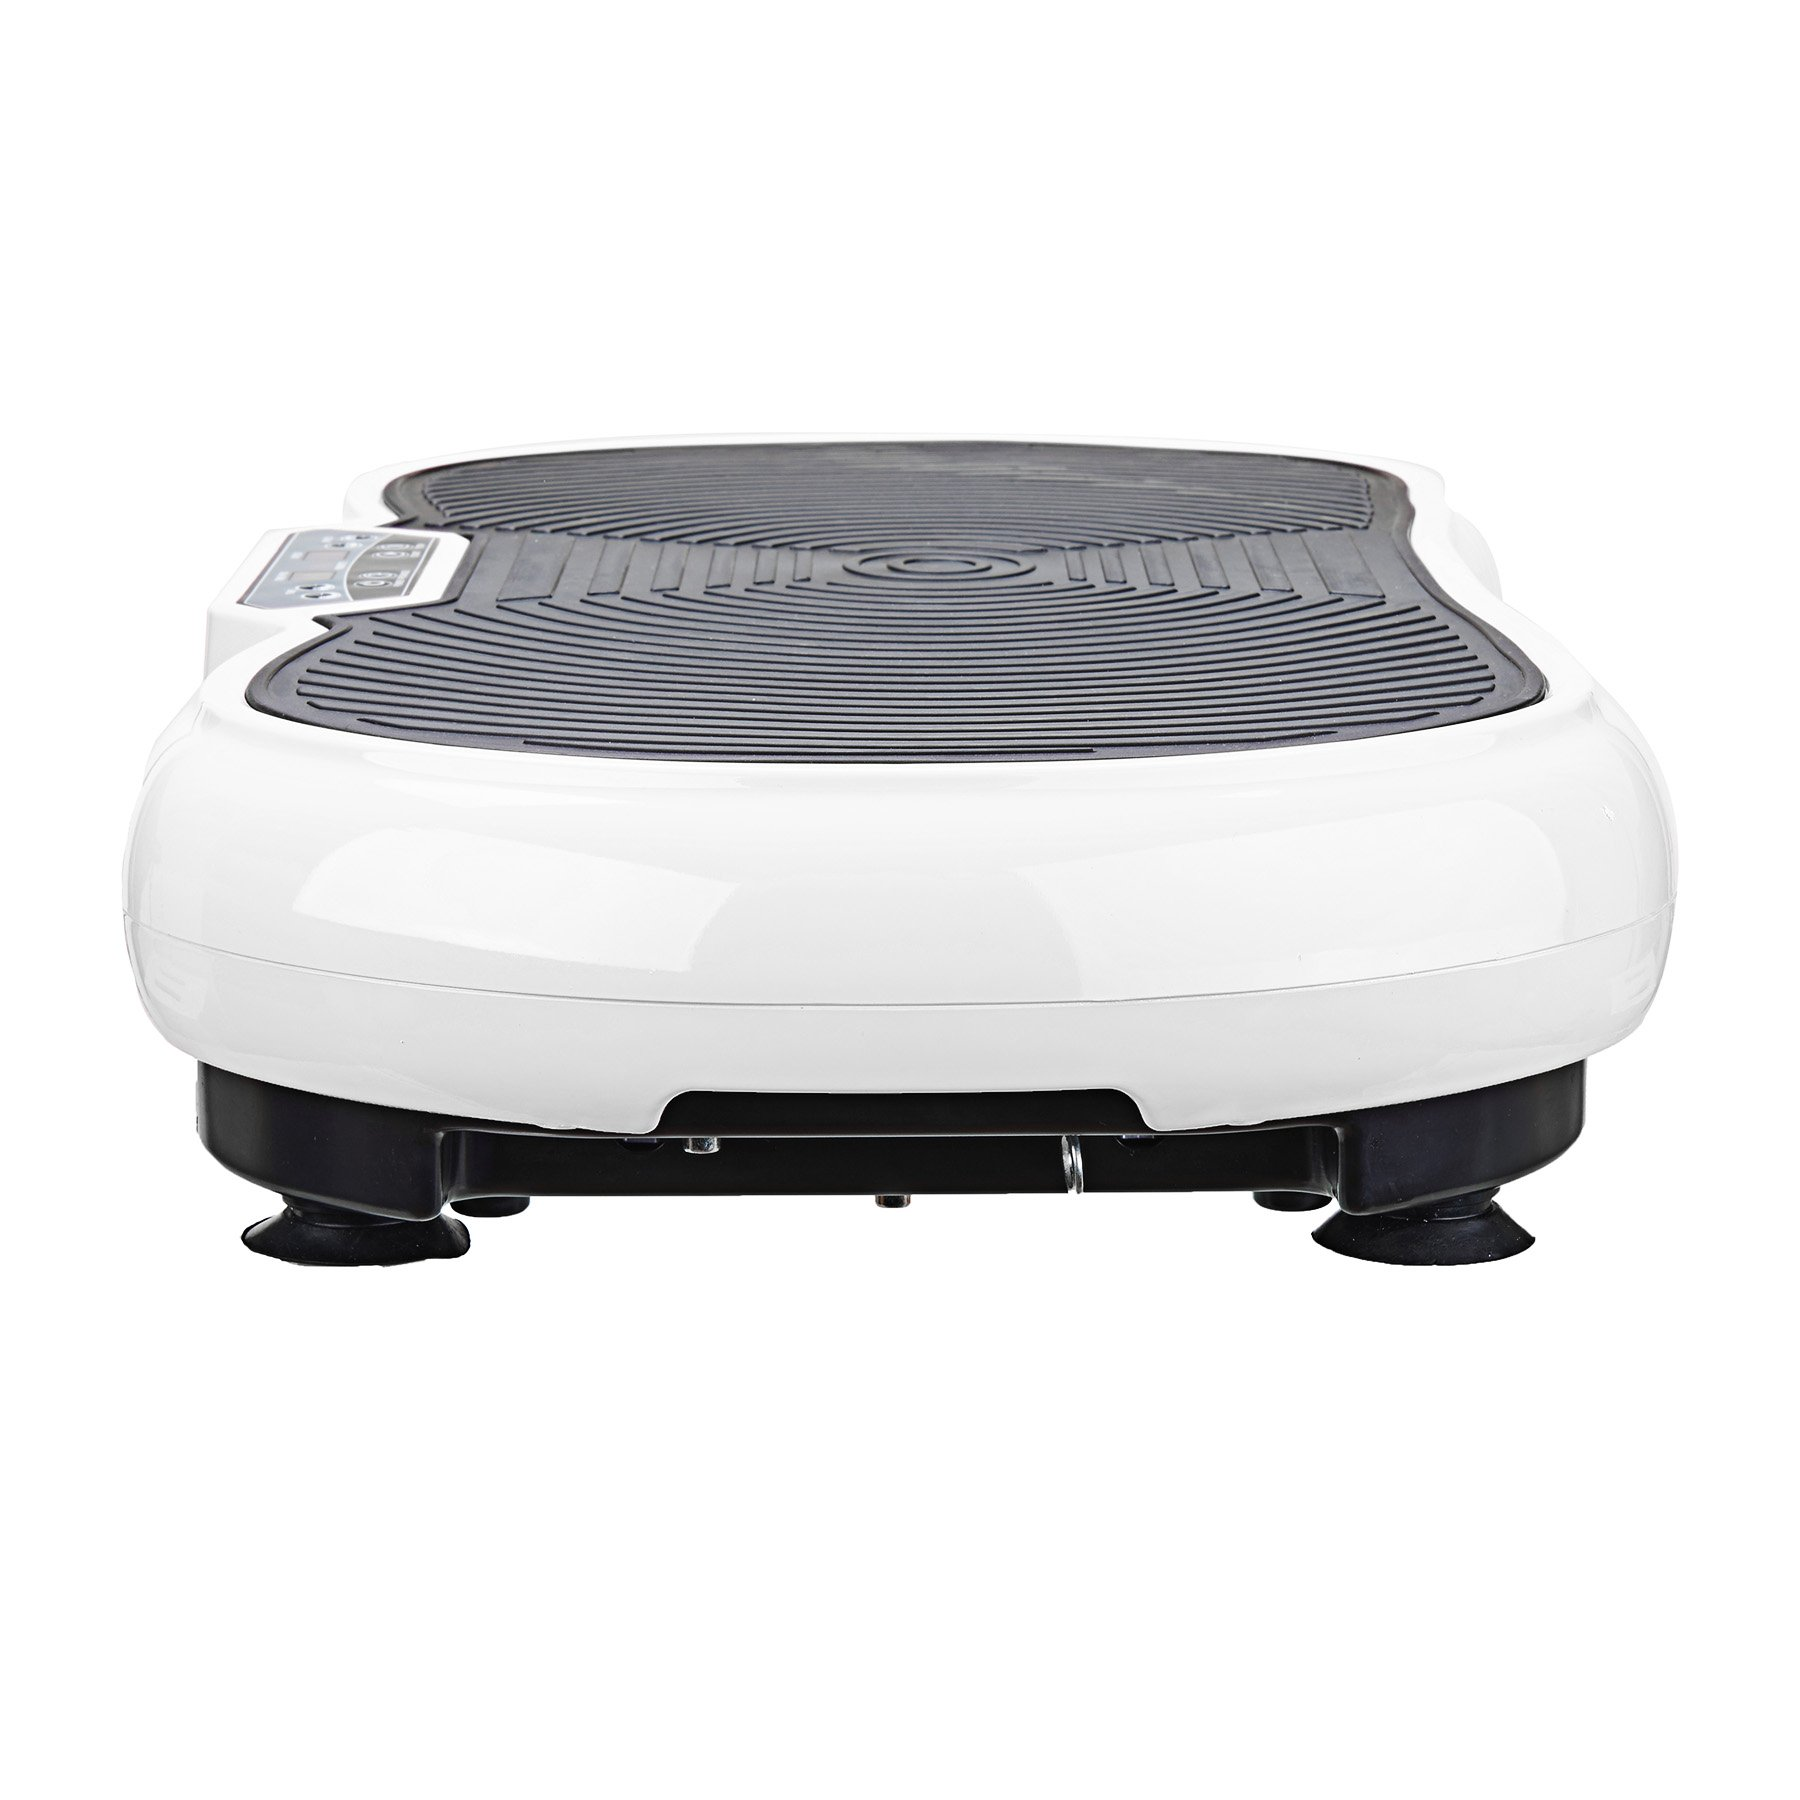 Pinty Fitness Vibration Platform - Whole Body Vibration Machine Crazy Fit Vibration Plate with Remote Control & Resistance Bands (White) by Pinty (Image #2)